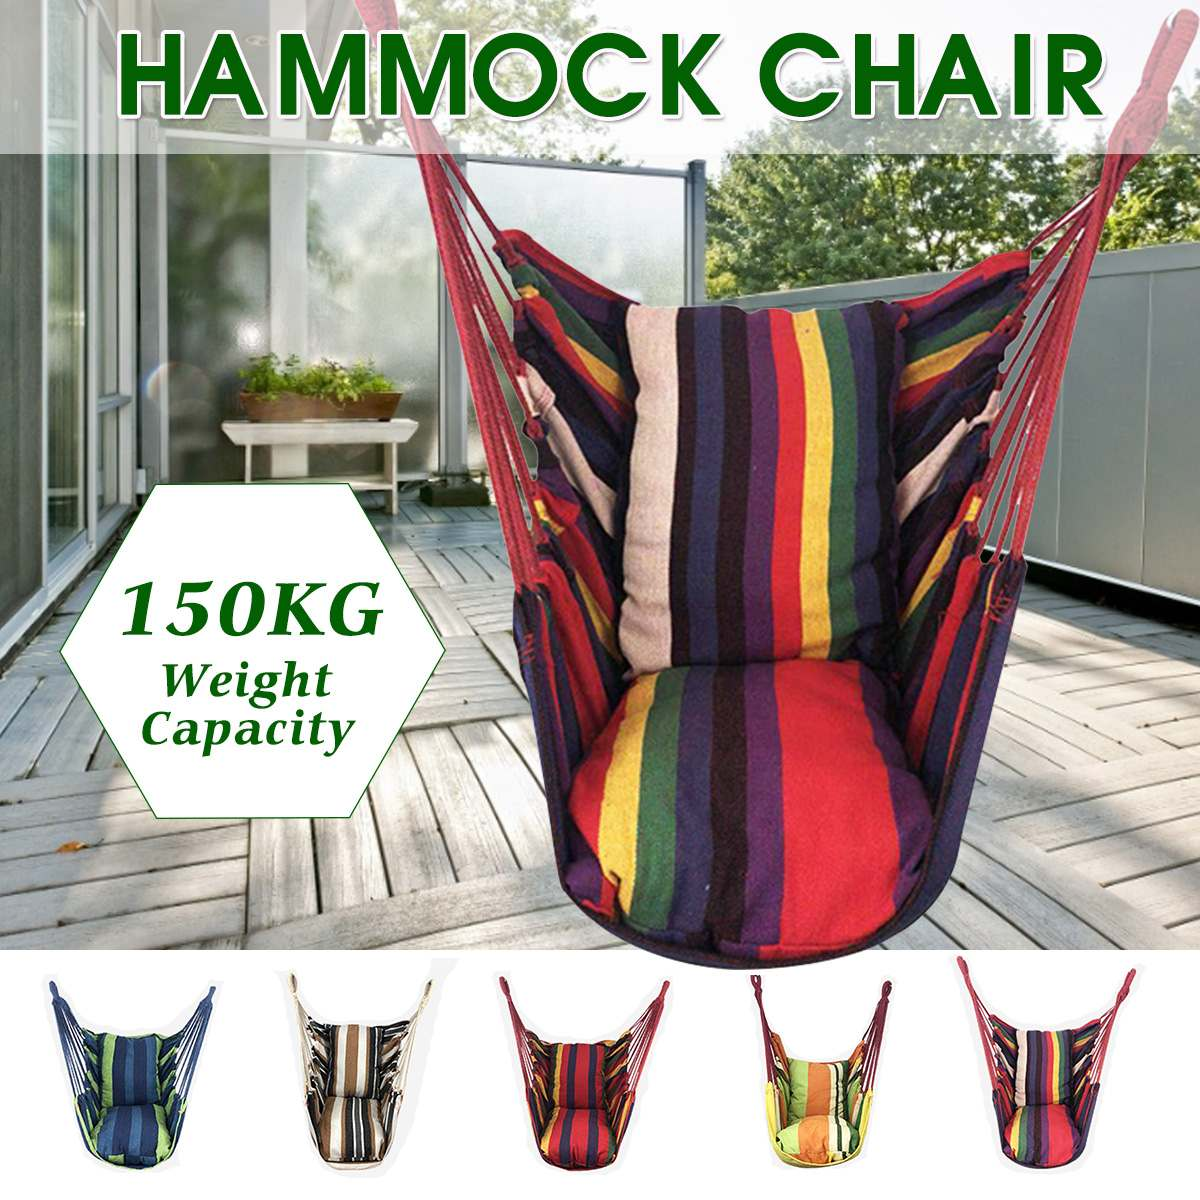 Portable Hammock Chair Hanging Rope Chair Swing Chair Seat with 2 Pillows for Garden Indoor Outdoor Fashionable Hammock Swings(China)